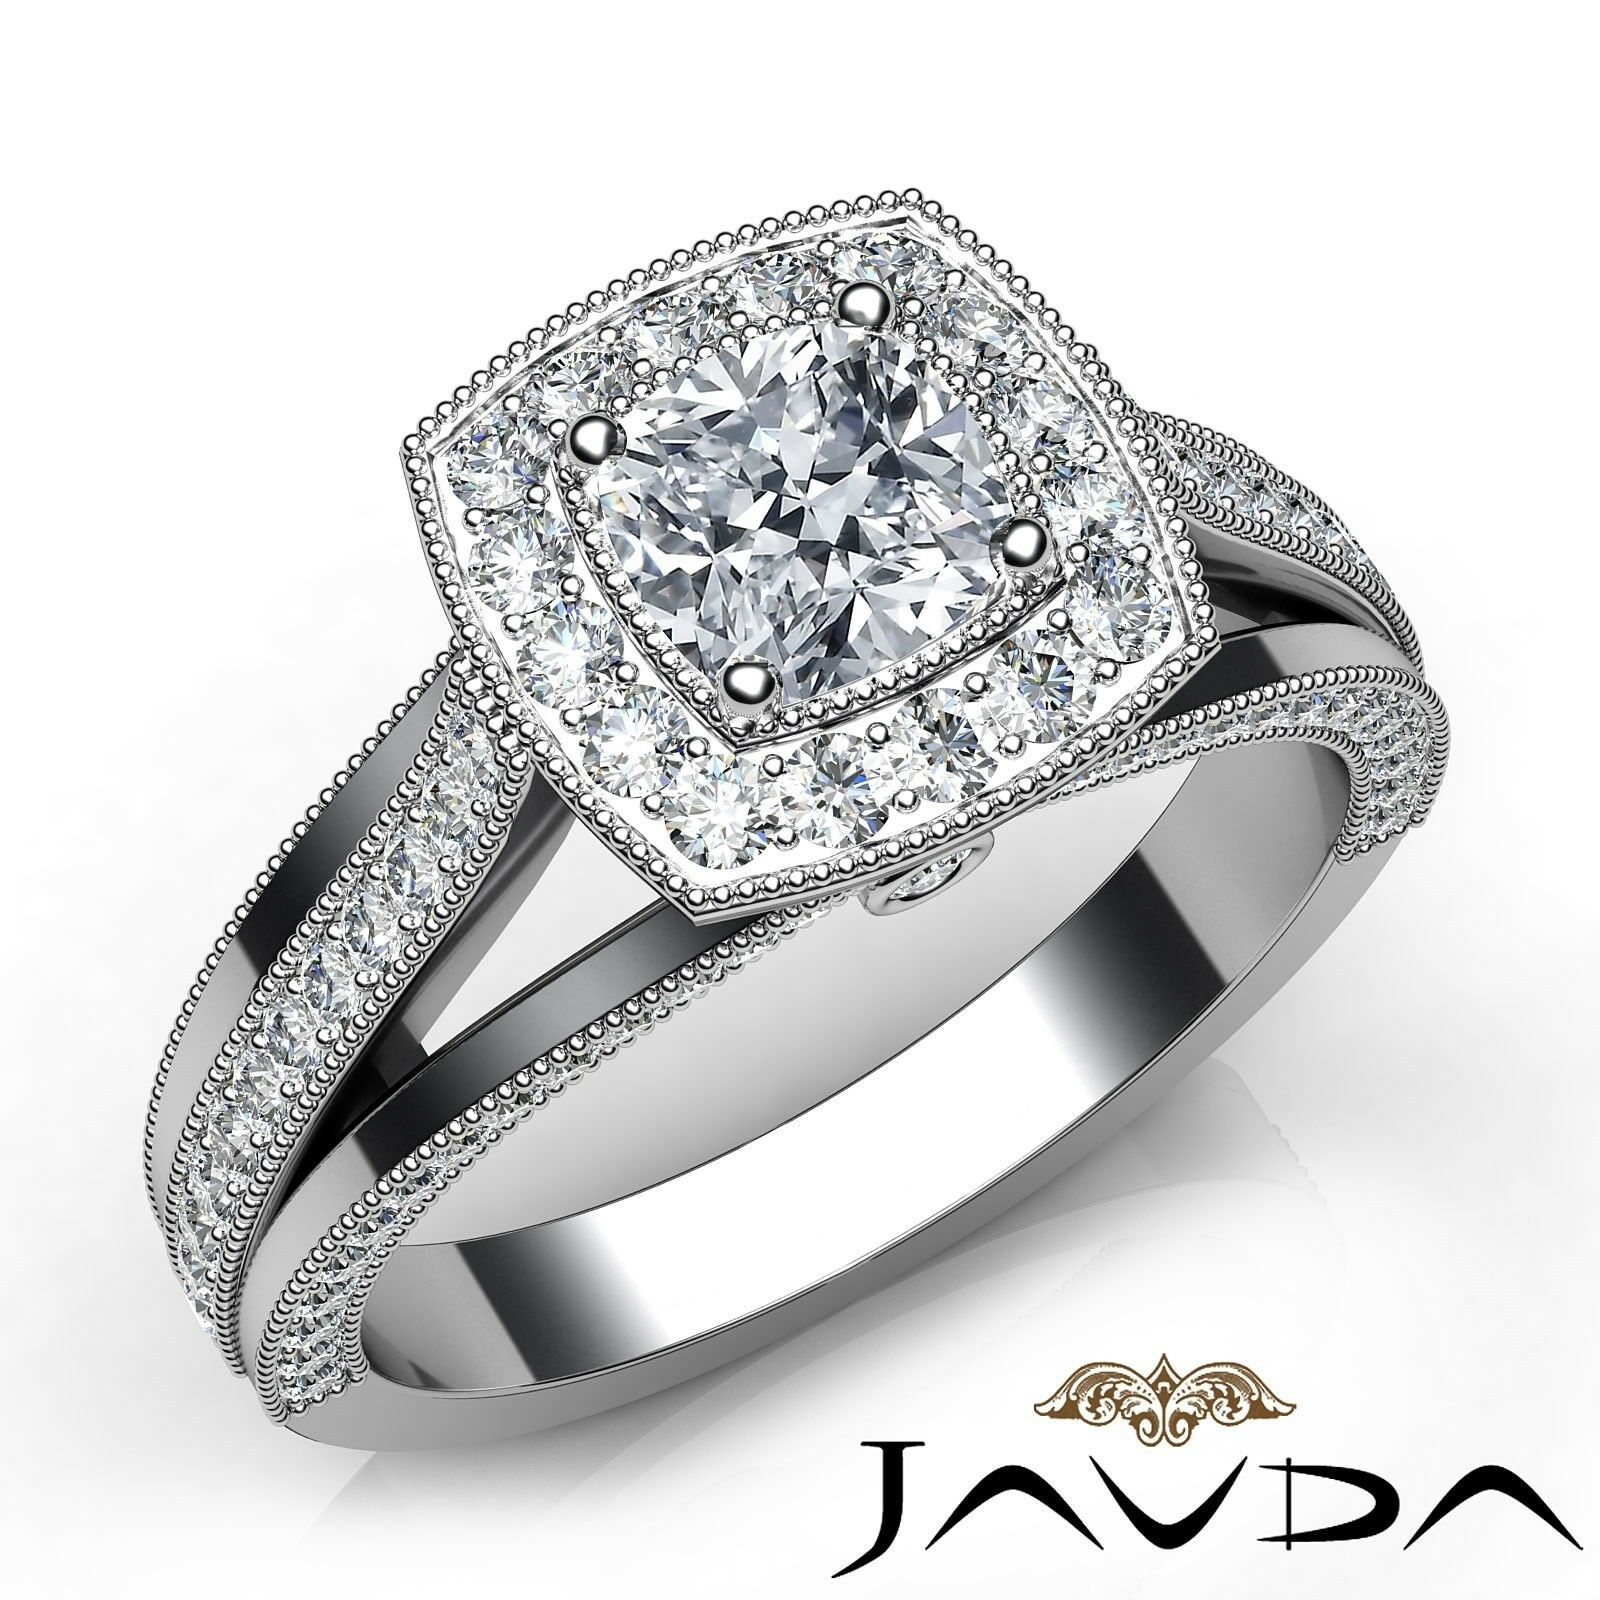 1.6ctw Milgrain Halo Bezel Cushion Diamond Engagement Ring GIA F-VVS2 White Gold